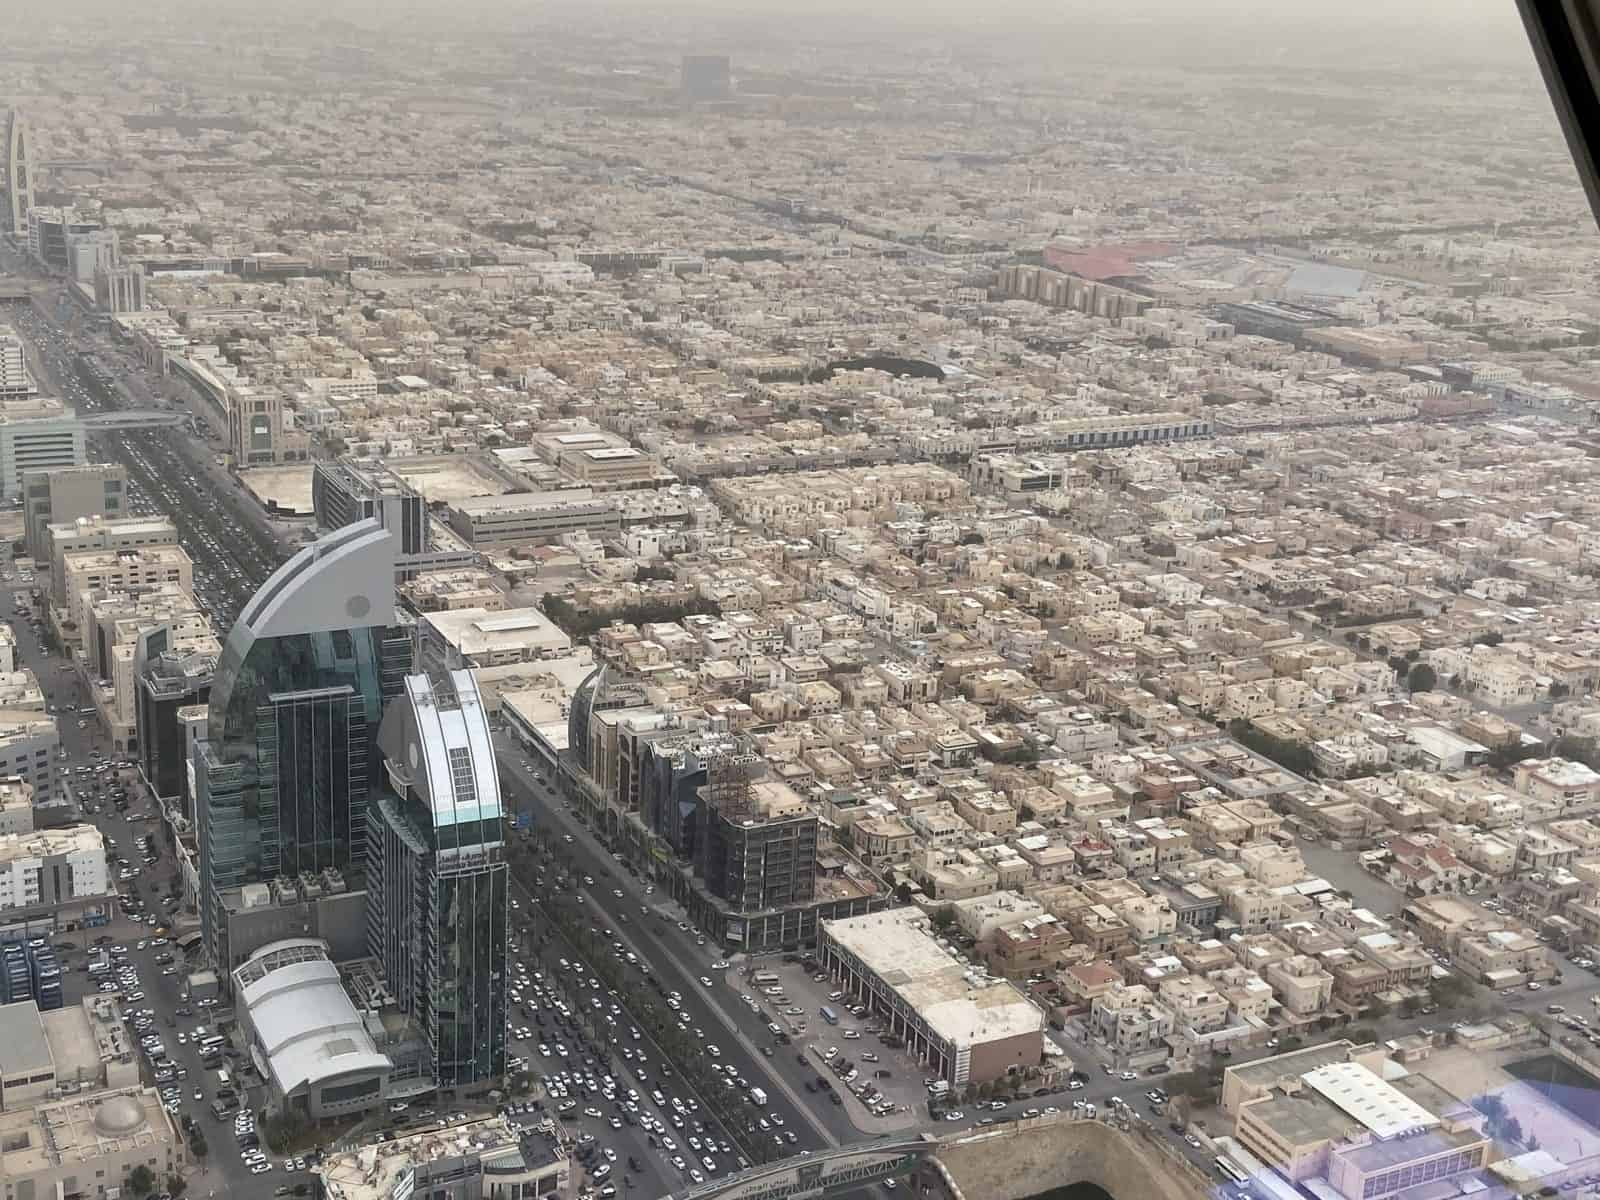 The view of Riyadh from the Kingdom Centre's Sky Bridge.